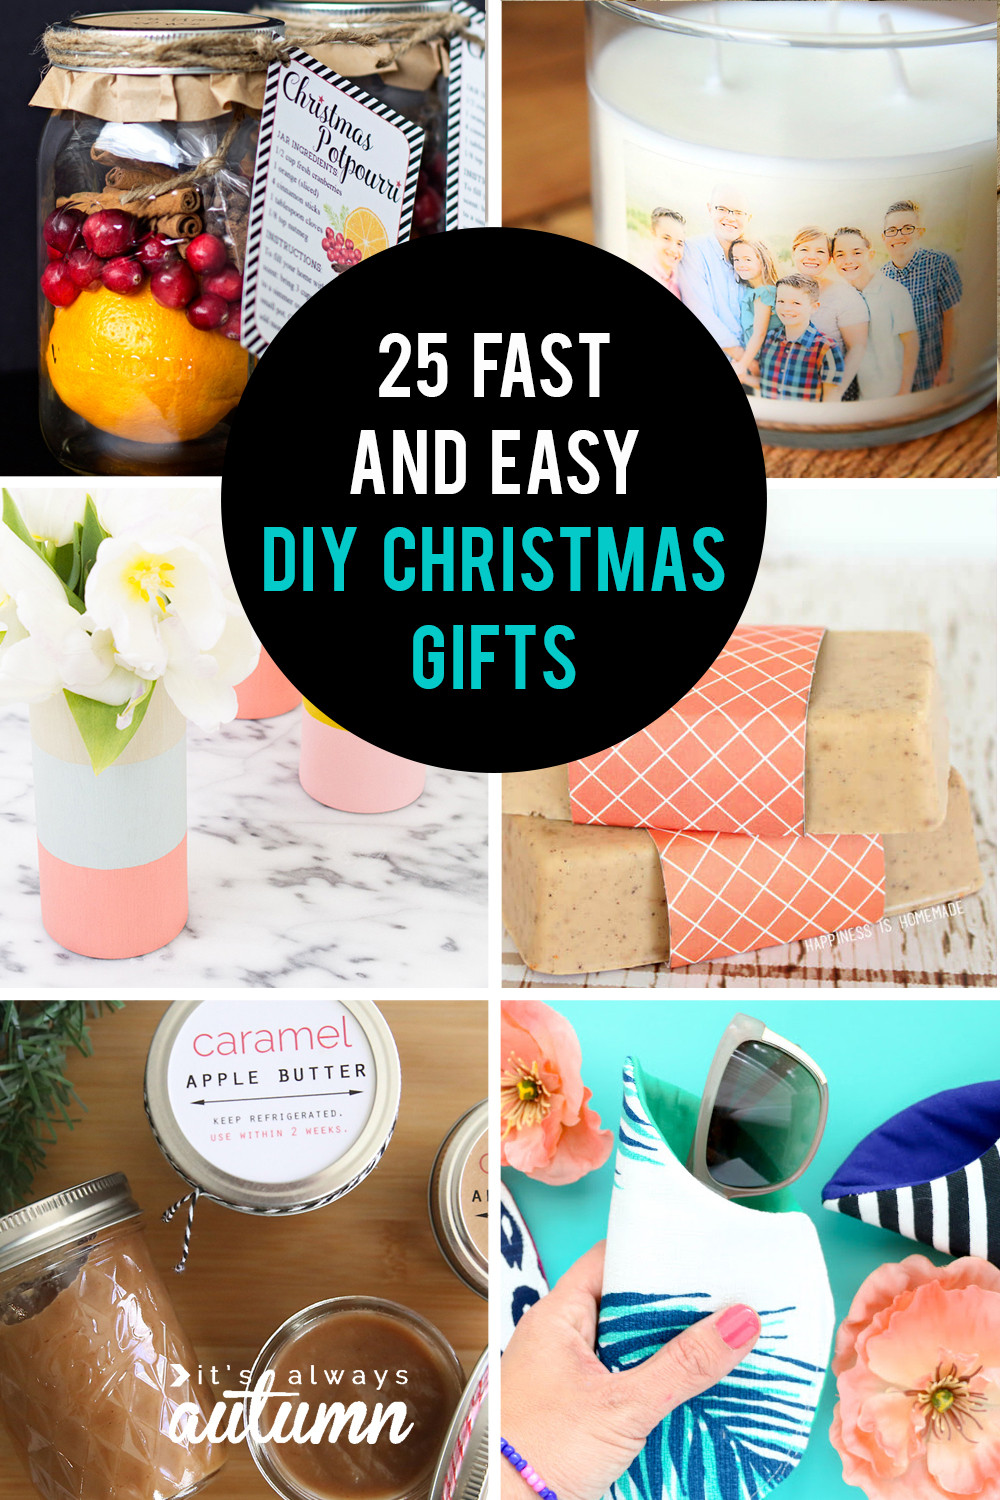 DIY Holiday Gift Ideas  25 easy homemade Christmas ts you can make in 15